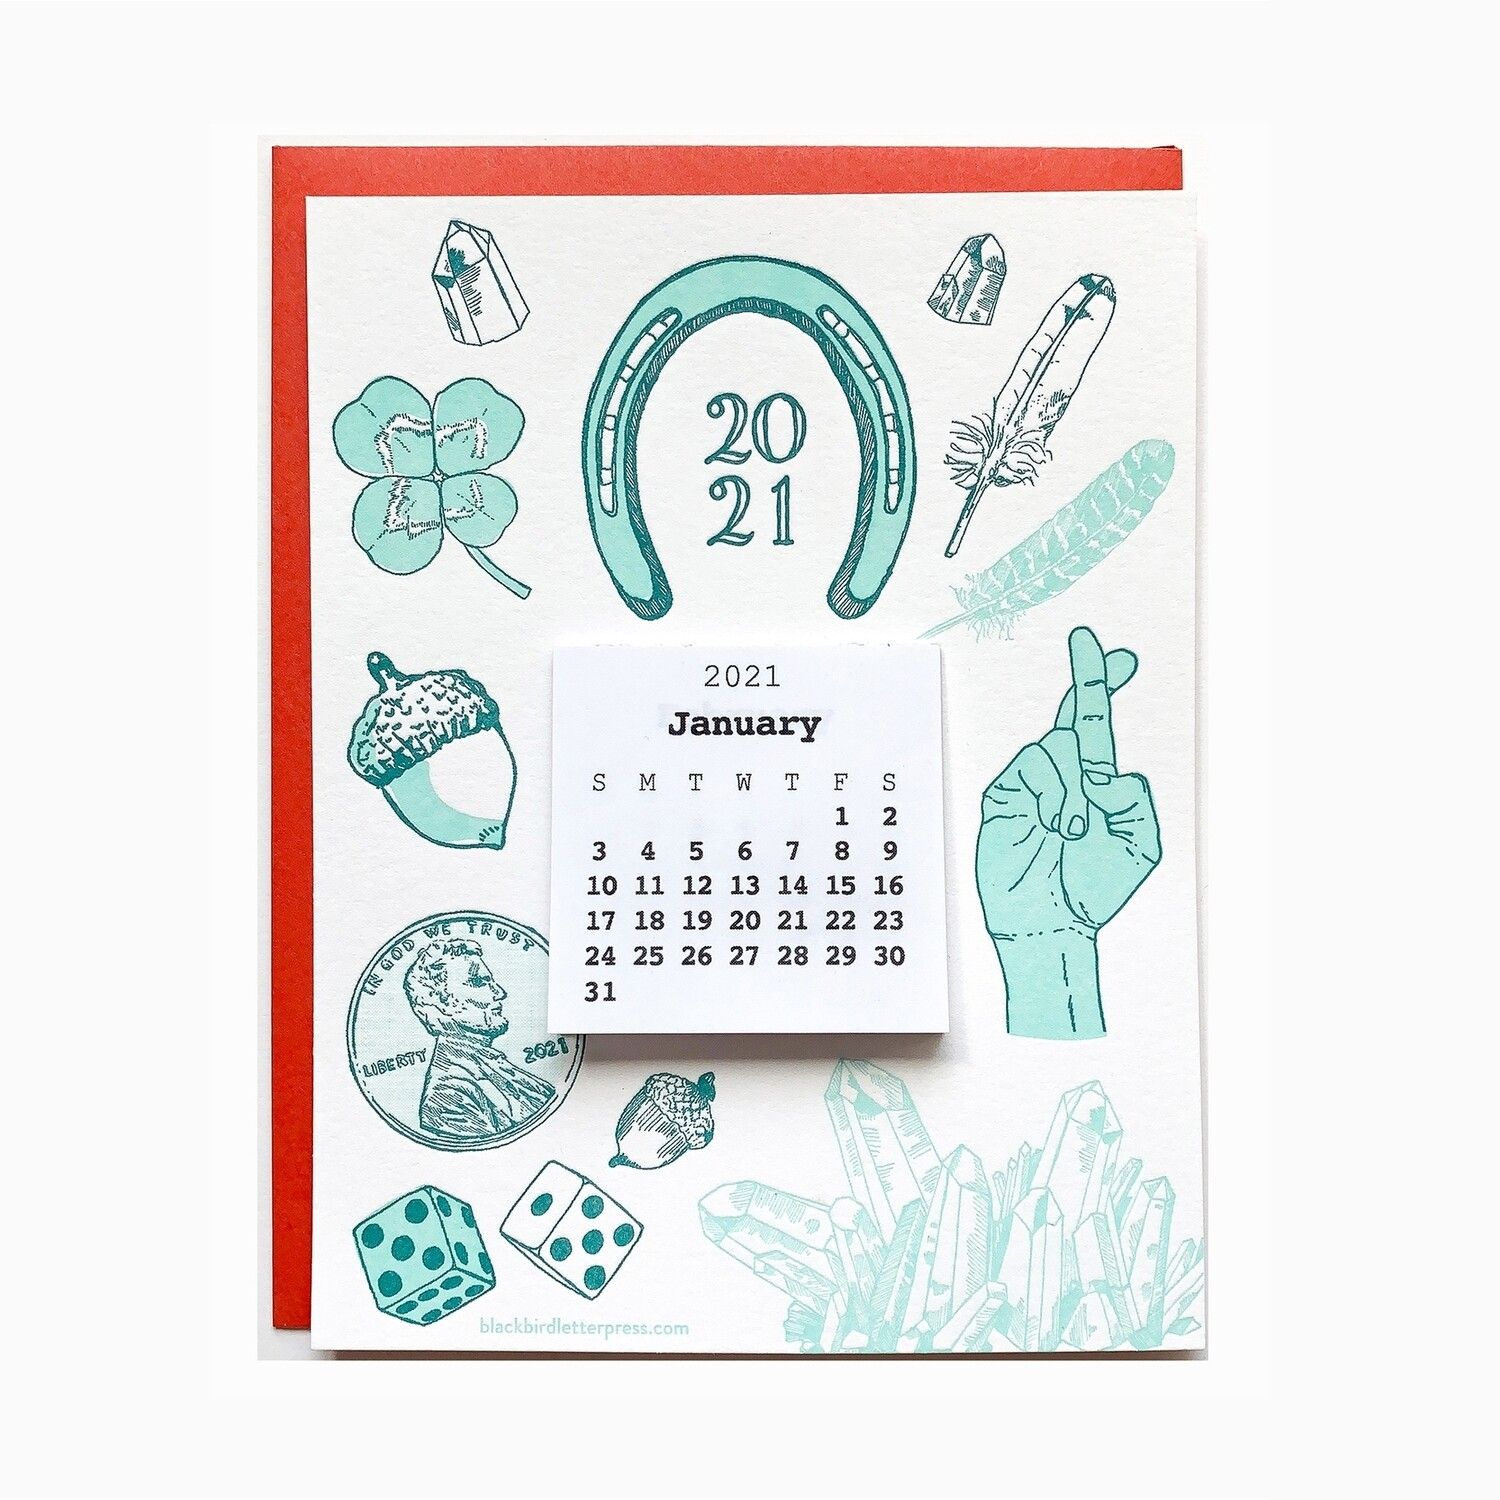 2021 LUCK Mini Calendar Card